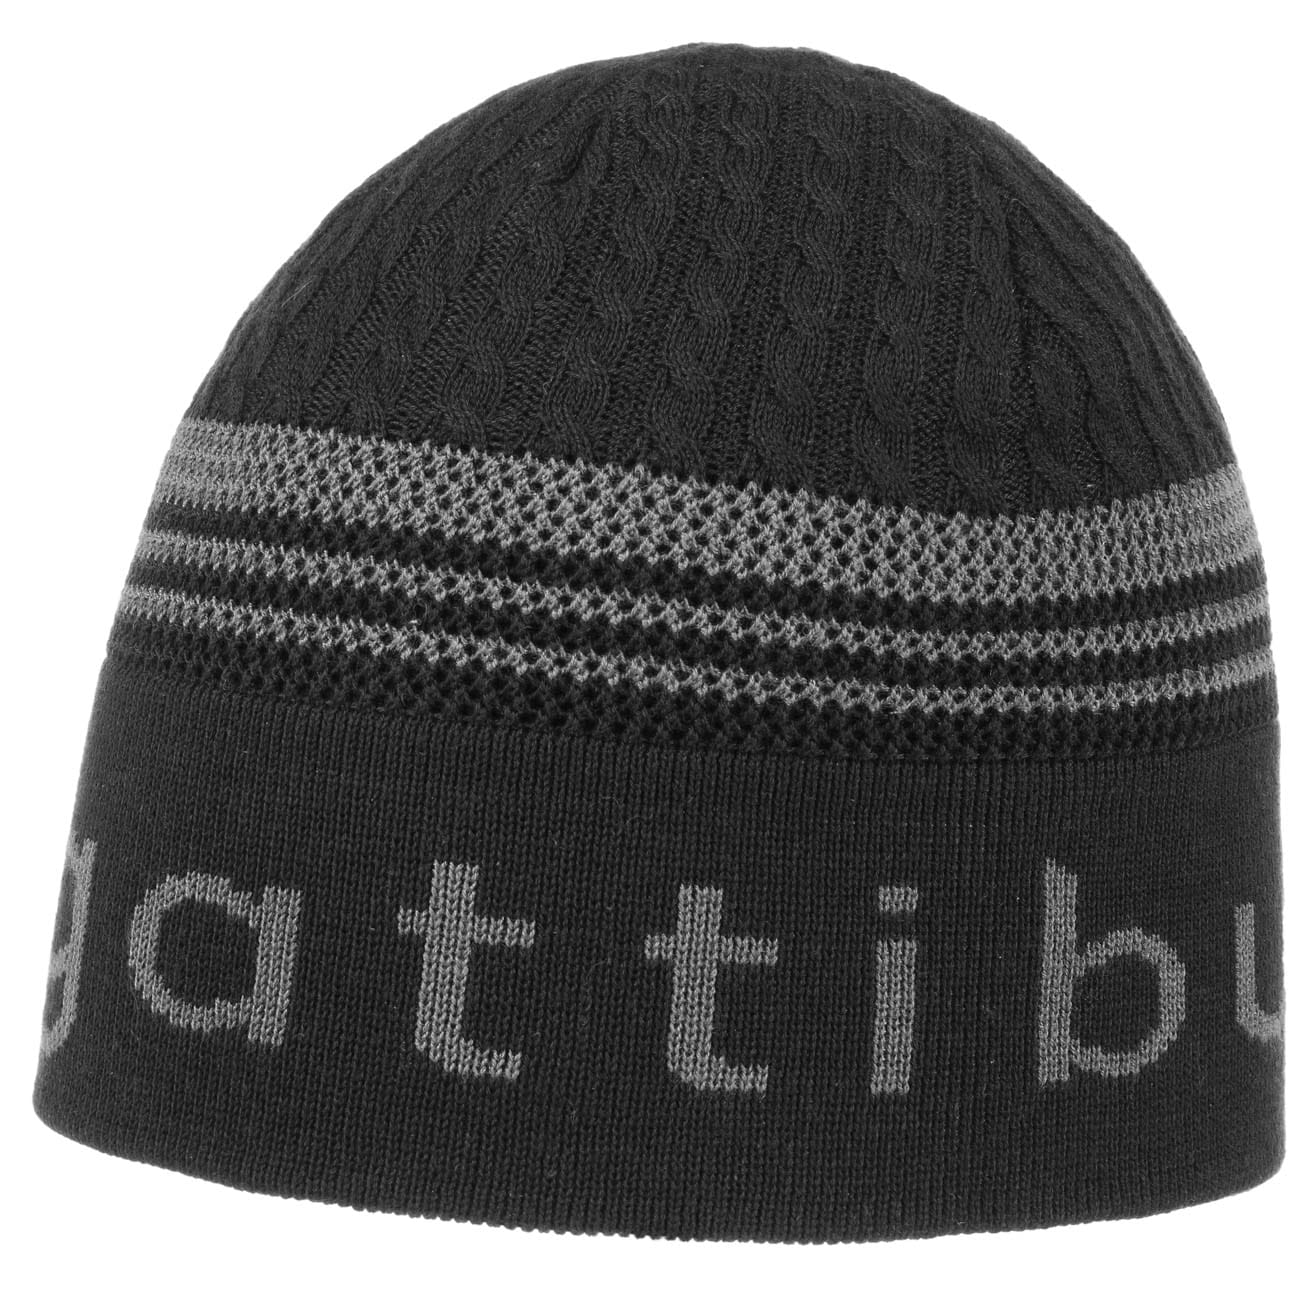 Gorro de Punto Basic Stripes by bugatti  gorro de invierno